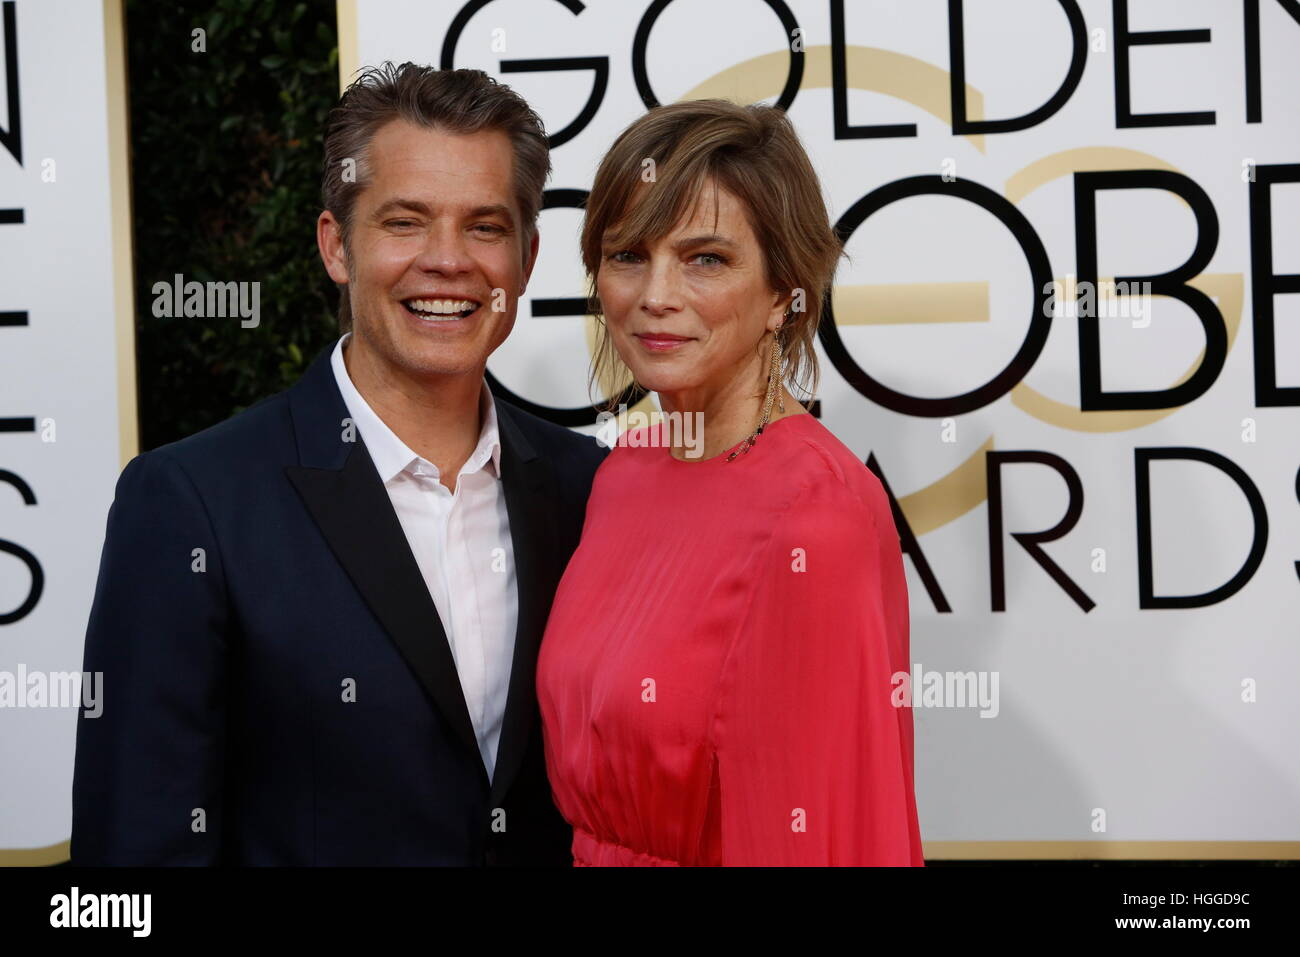 American actor Timothy Olyphant with his wife Alexis Knief